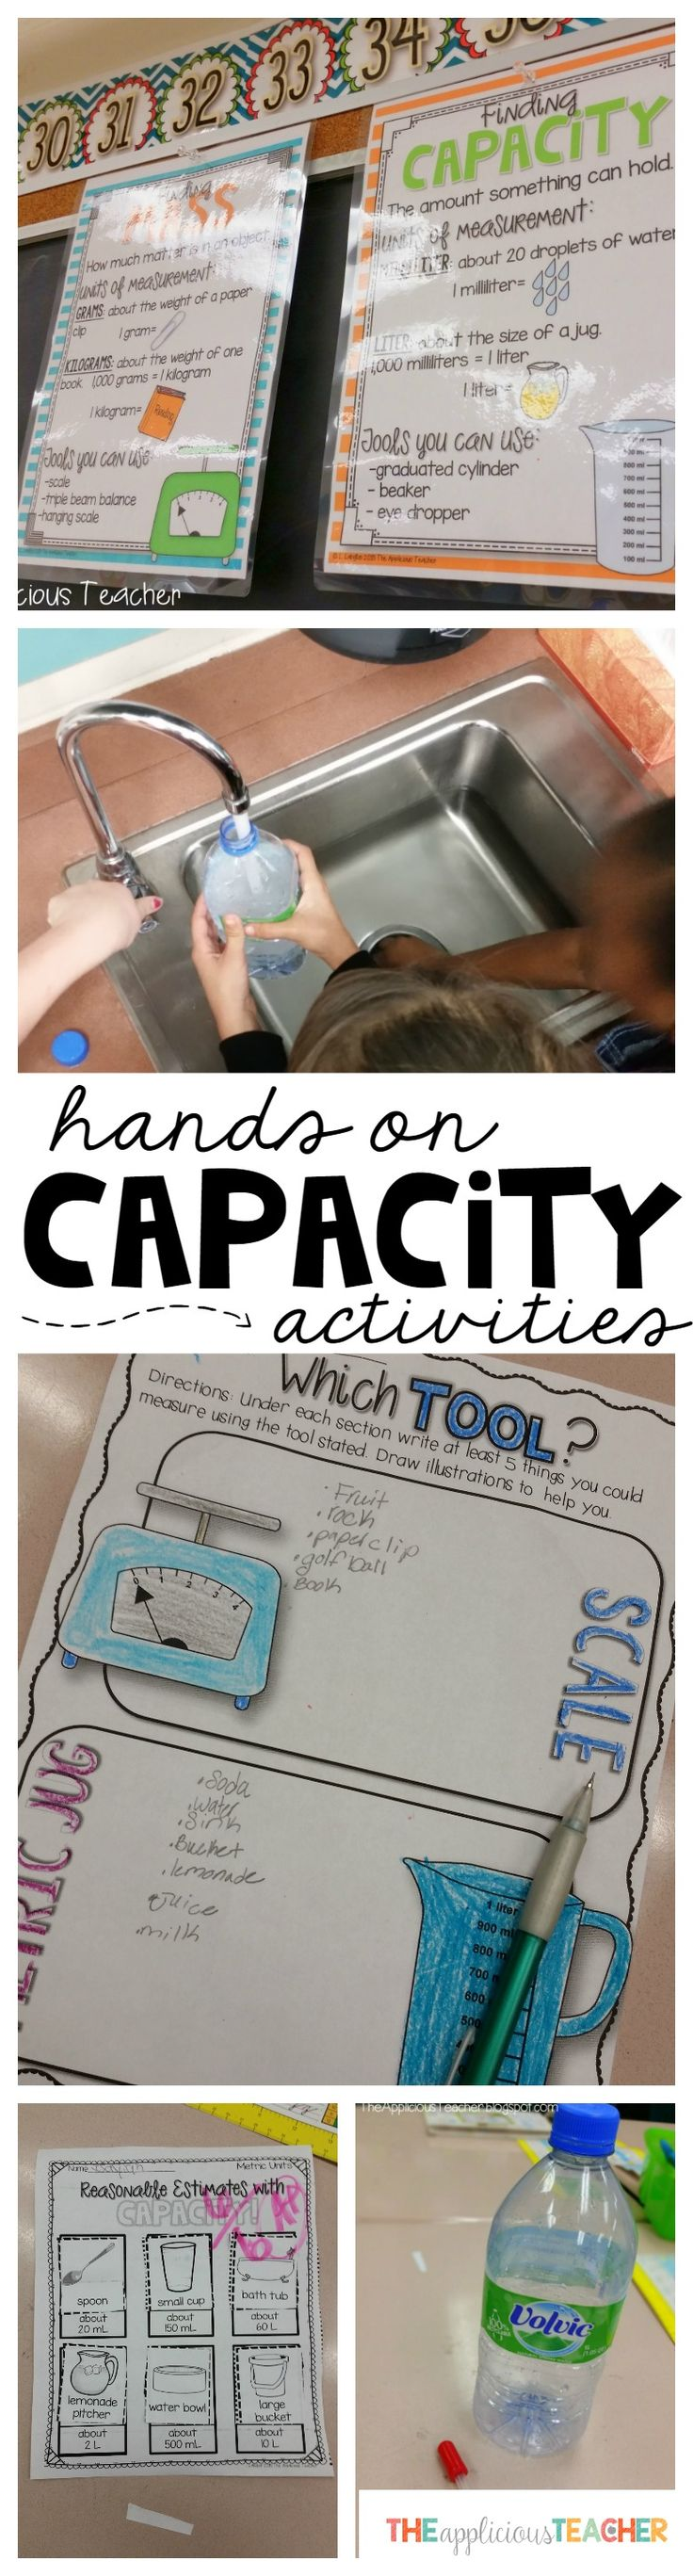 Great ideas for teaching capacity using hands on approaches! Love the quick printables that she used to assess the students along the way! Super easy, fun, and engaging!